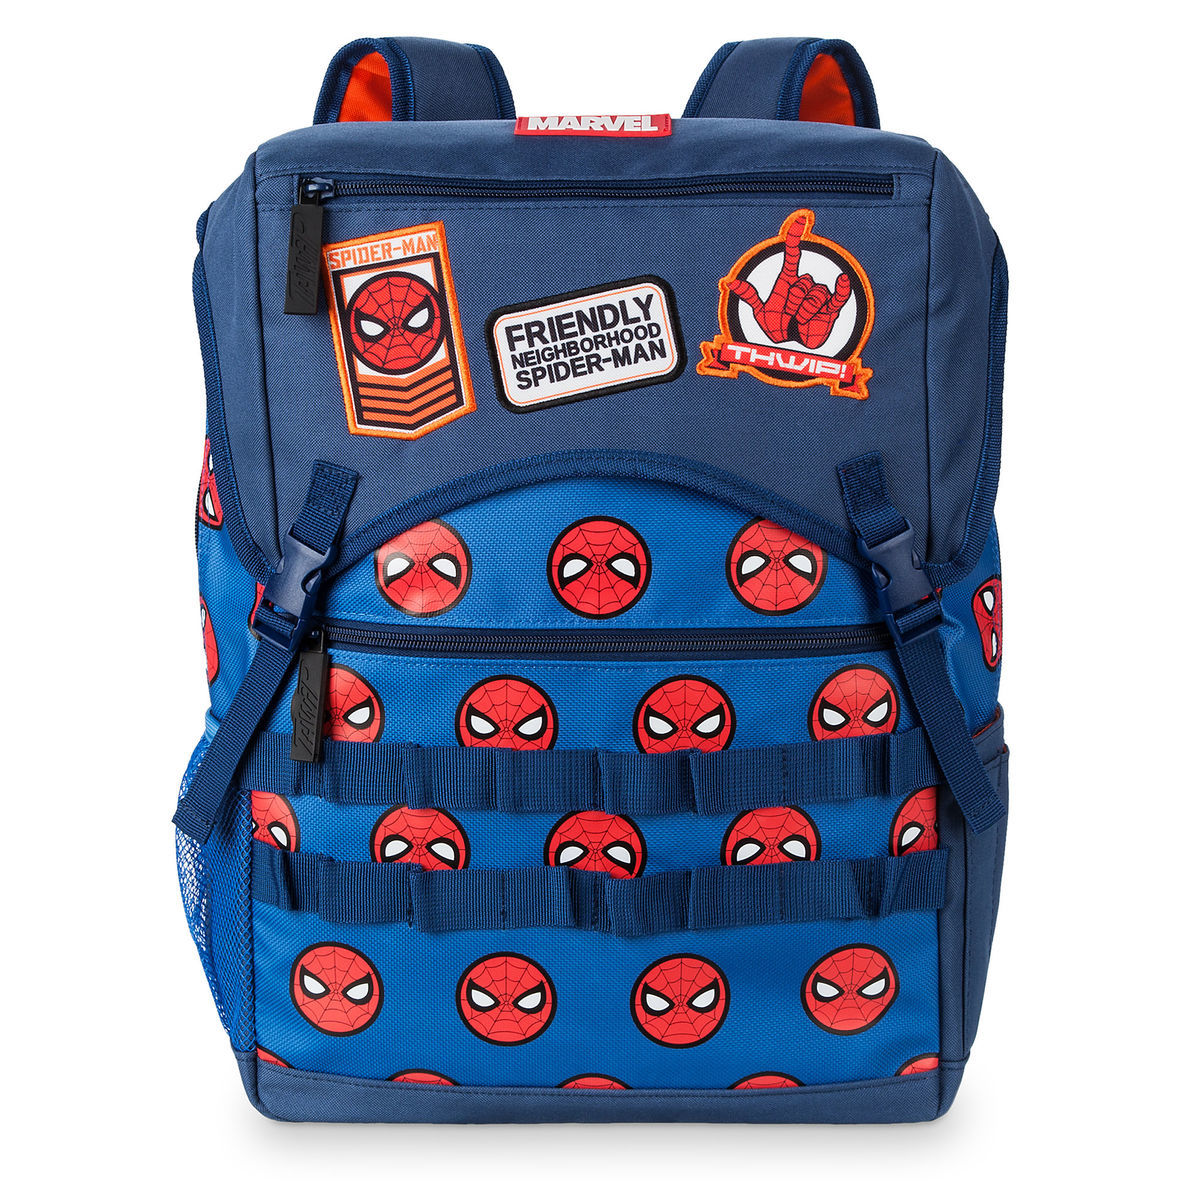 59c5c58ead2e Product Image of Spider-Man Backpack for Kids - Personalized   1